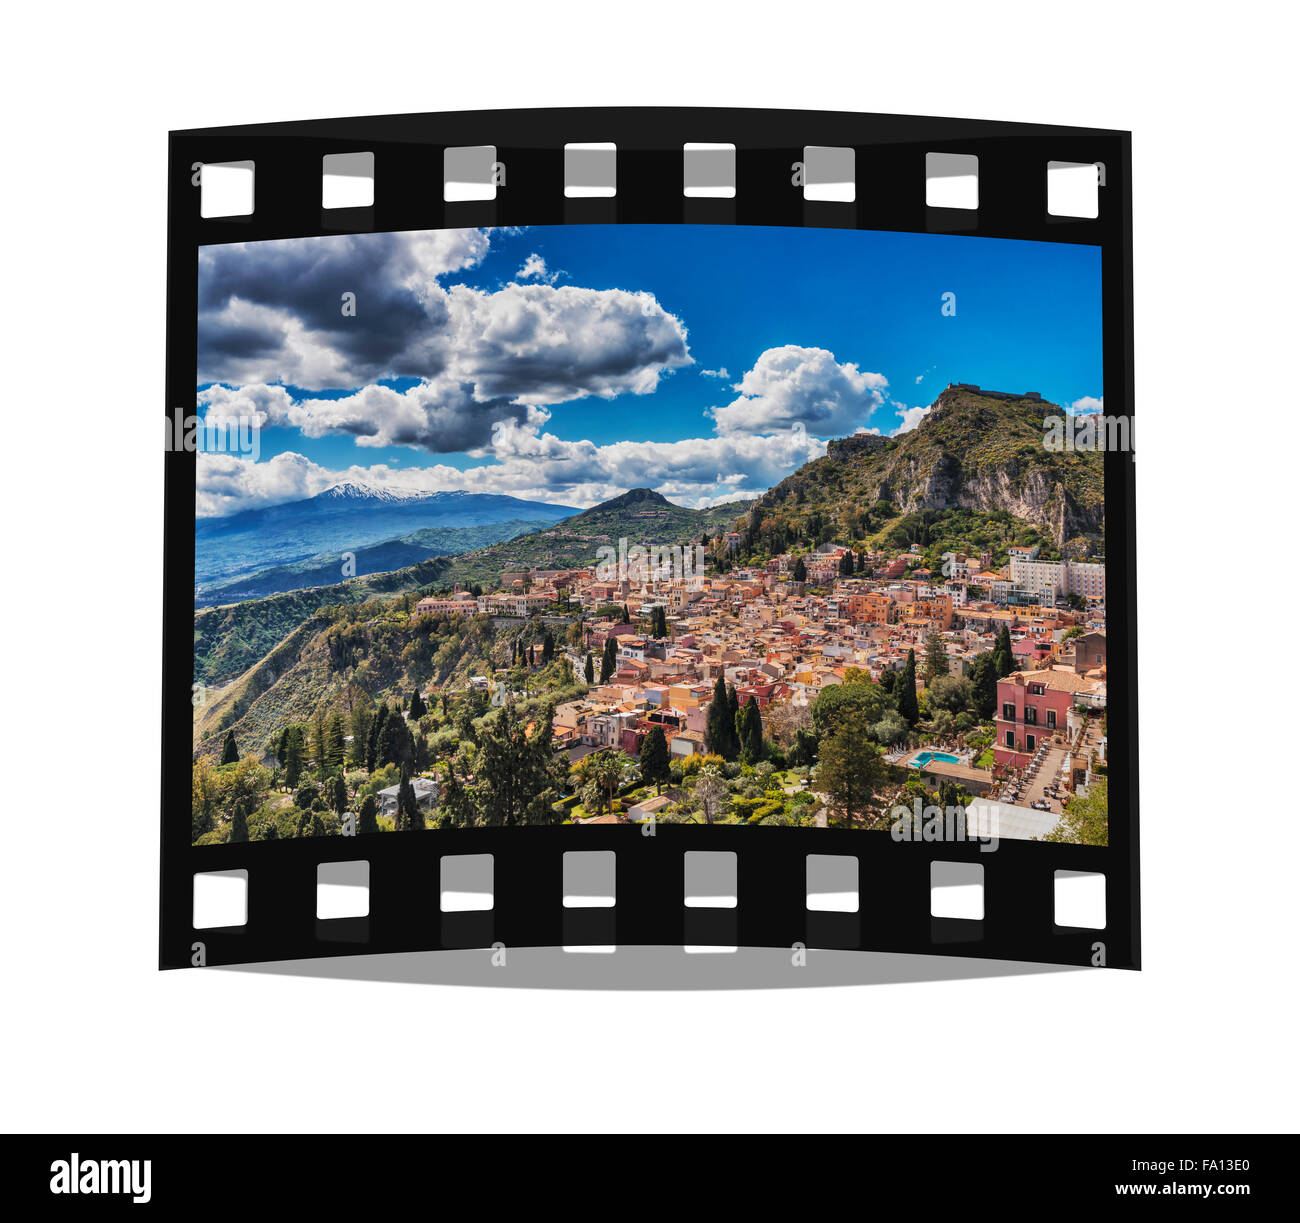 View on the town Taormina, Monte Tauro and Mount Etna, Province Messina, Sicily, Italy, Europe - Stock Image